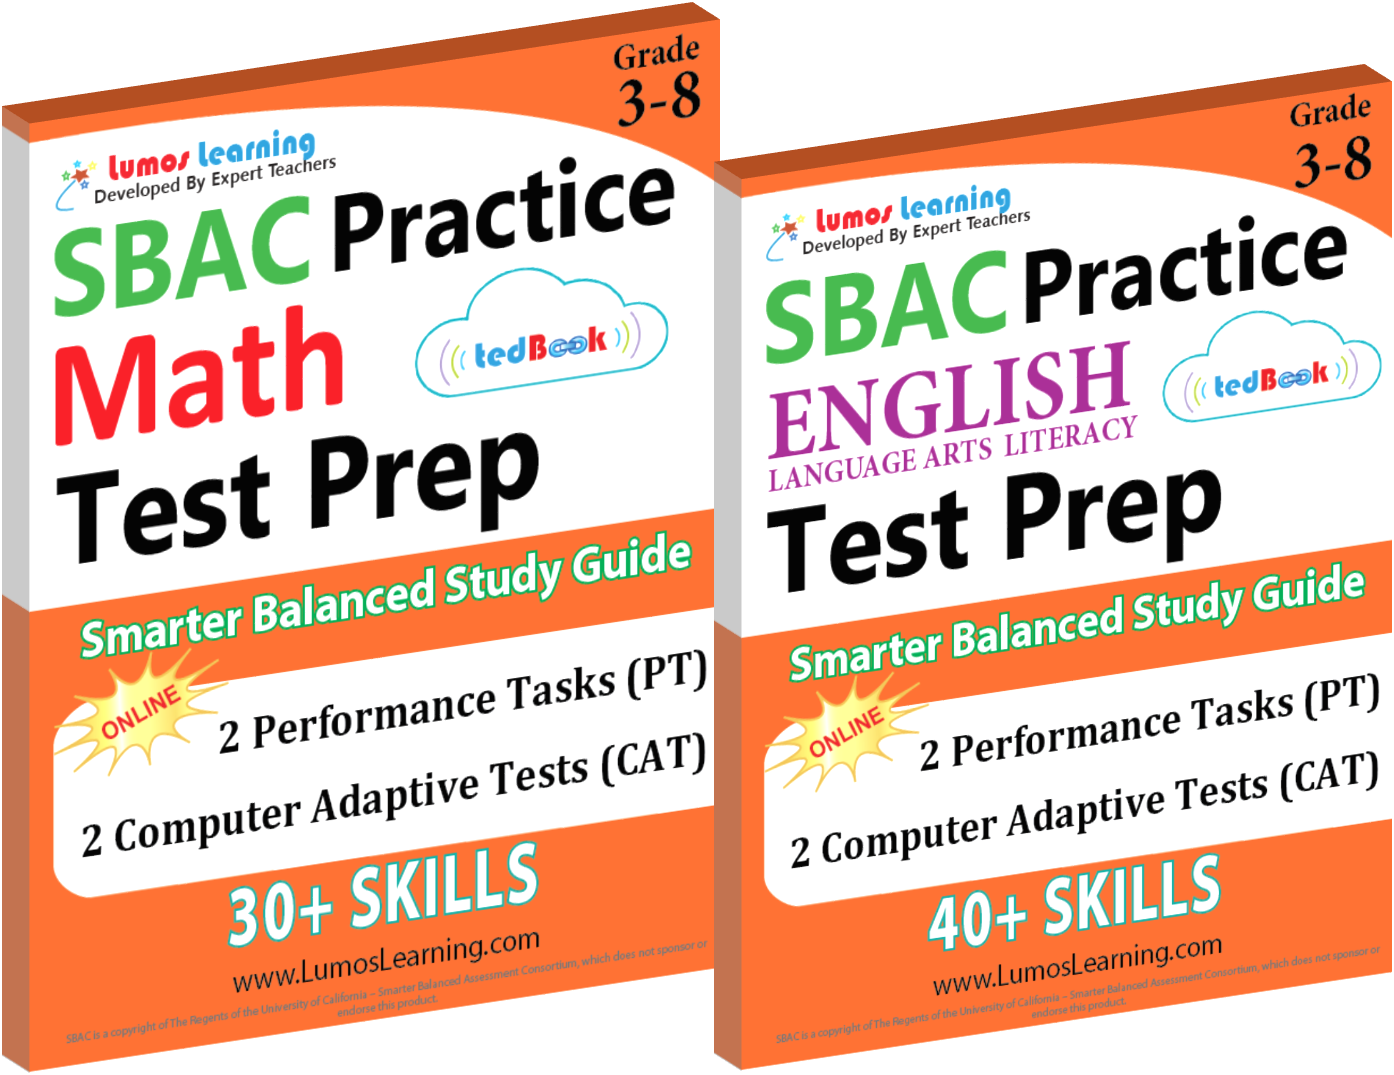 Printed Practice Workbooks and Online Practice Tests for SBAC